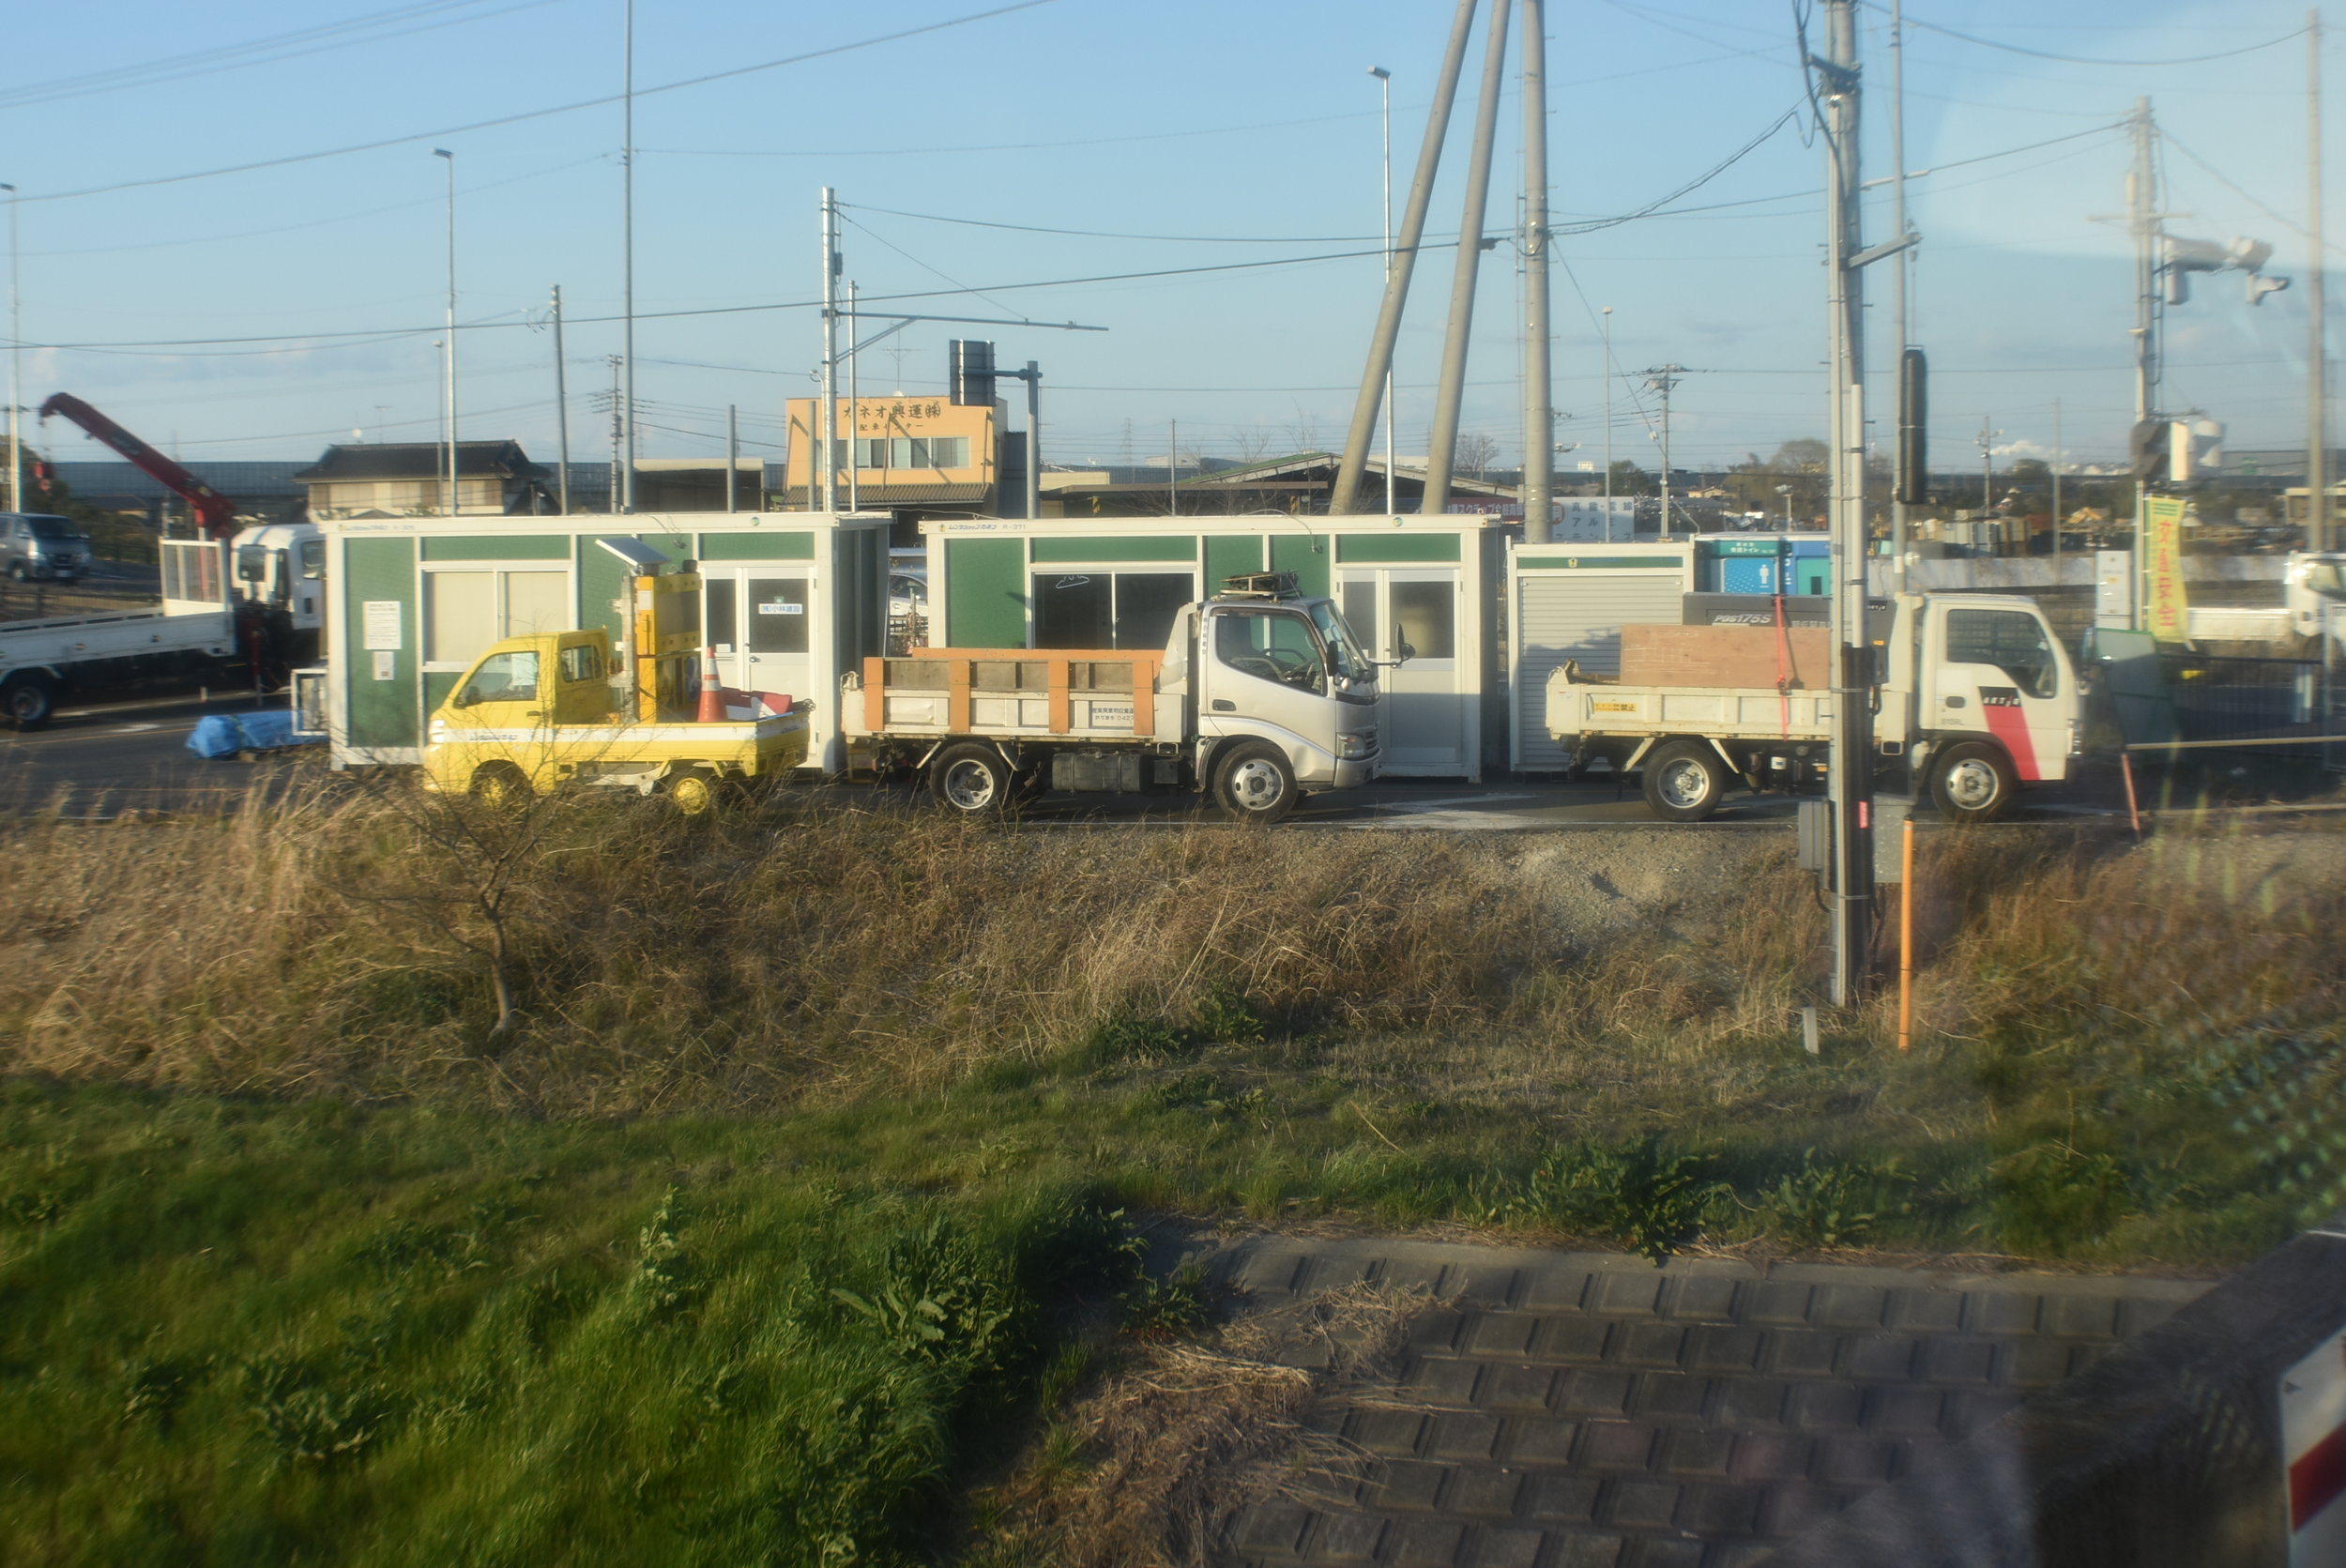 Next up was 1.5 hours on the bus which made for a lot of cool sights to see! I love these little Kai trucks!